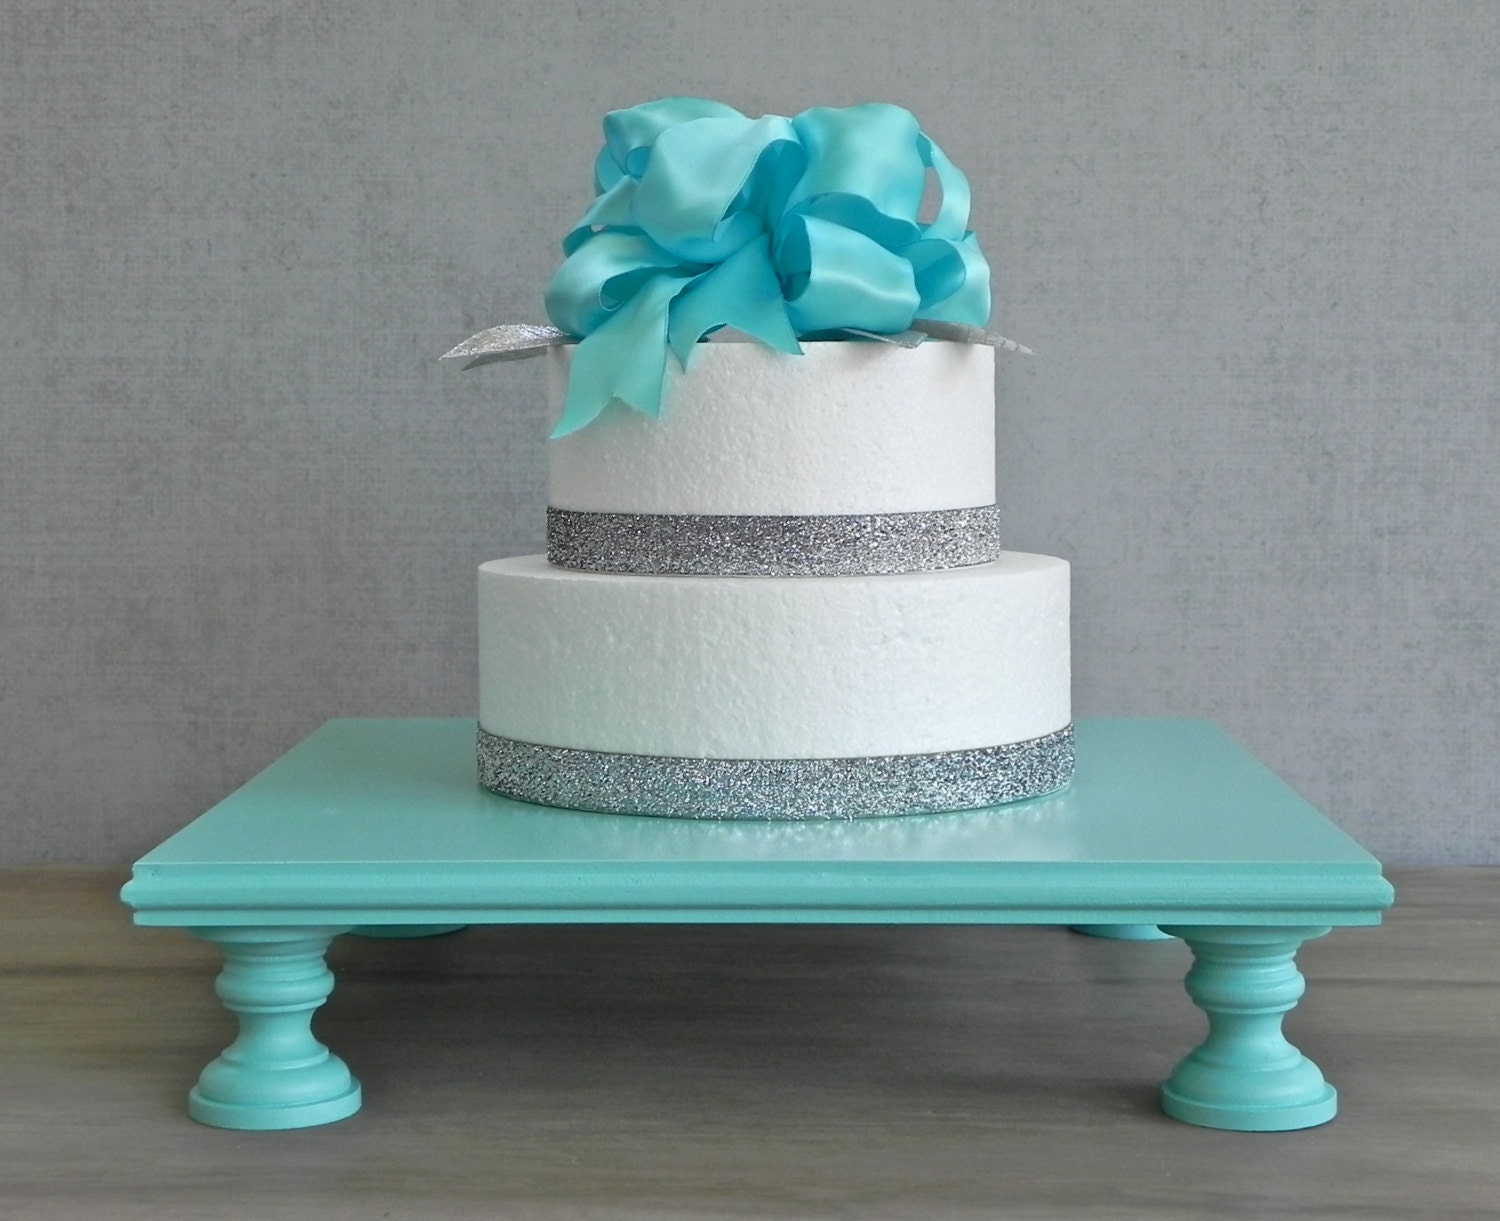 14 Cake Stand Square Cupcake Rustic Teal Robins Egg Blue